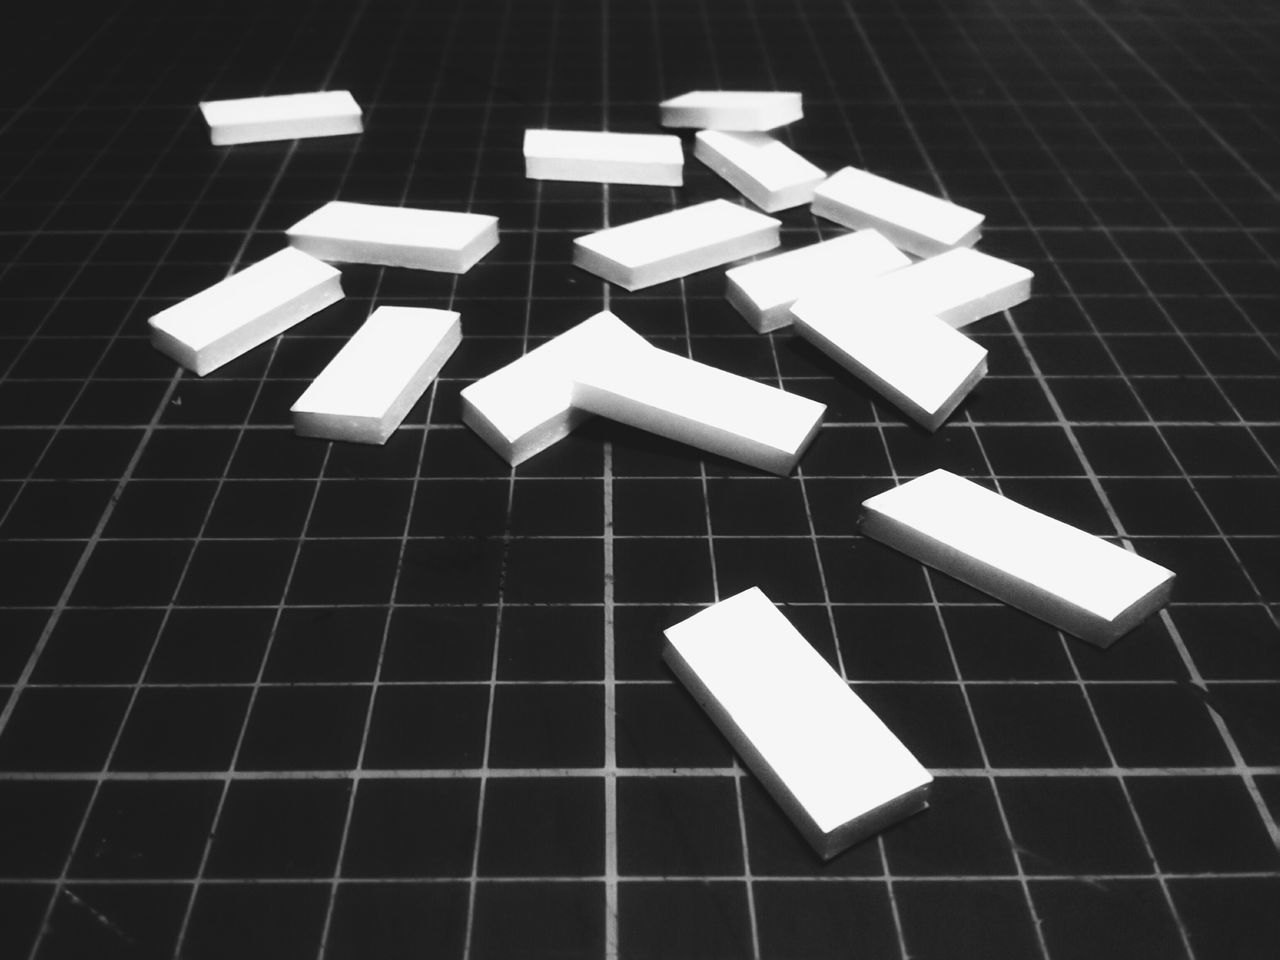 Work in progress | Theater Maquetteproject No People Black And White Close-up Personal Perspective Still Life Abstract Materials Architecture EyeEm Italy |